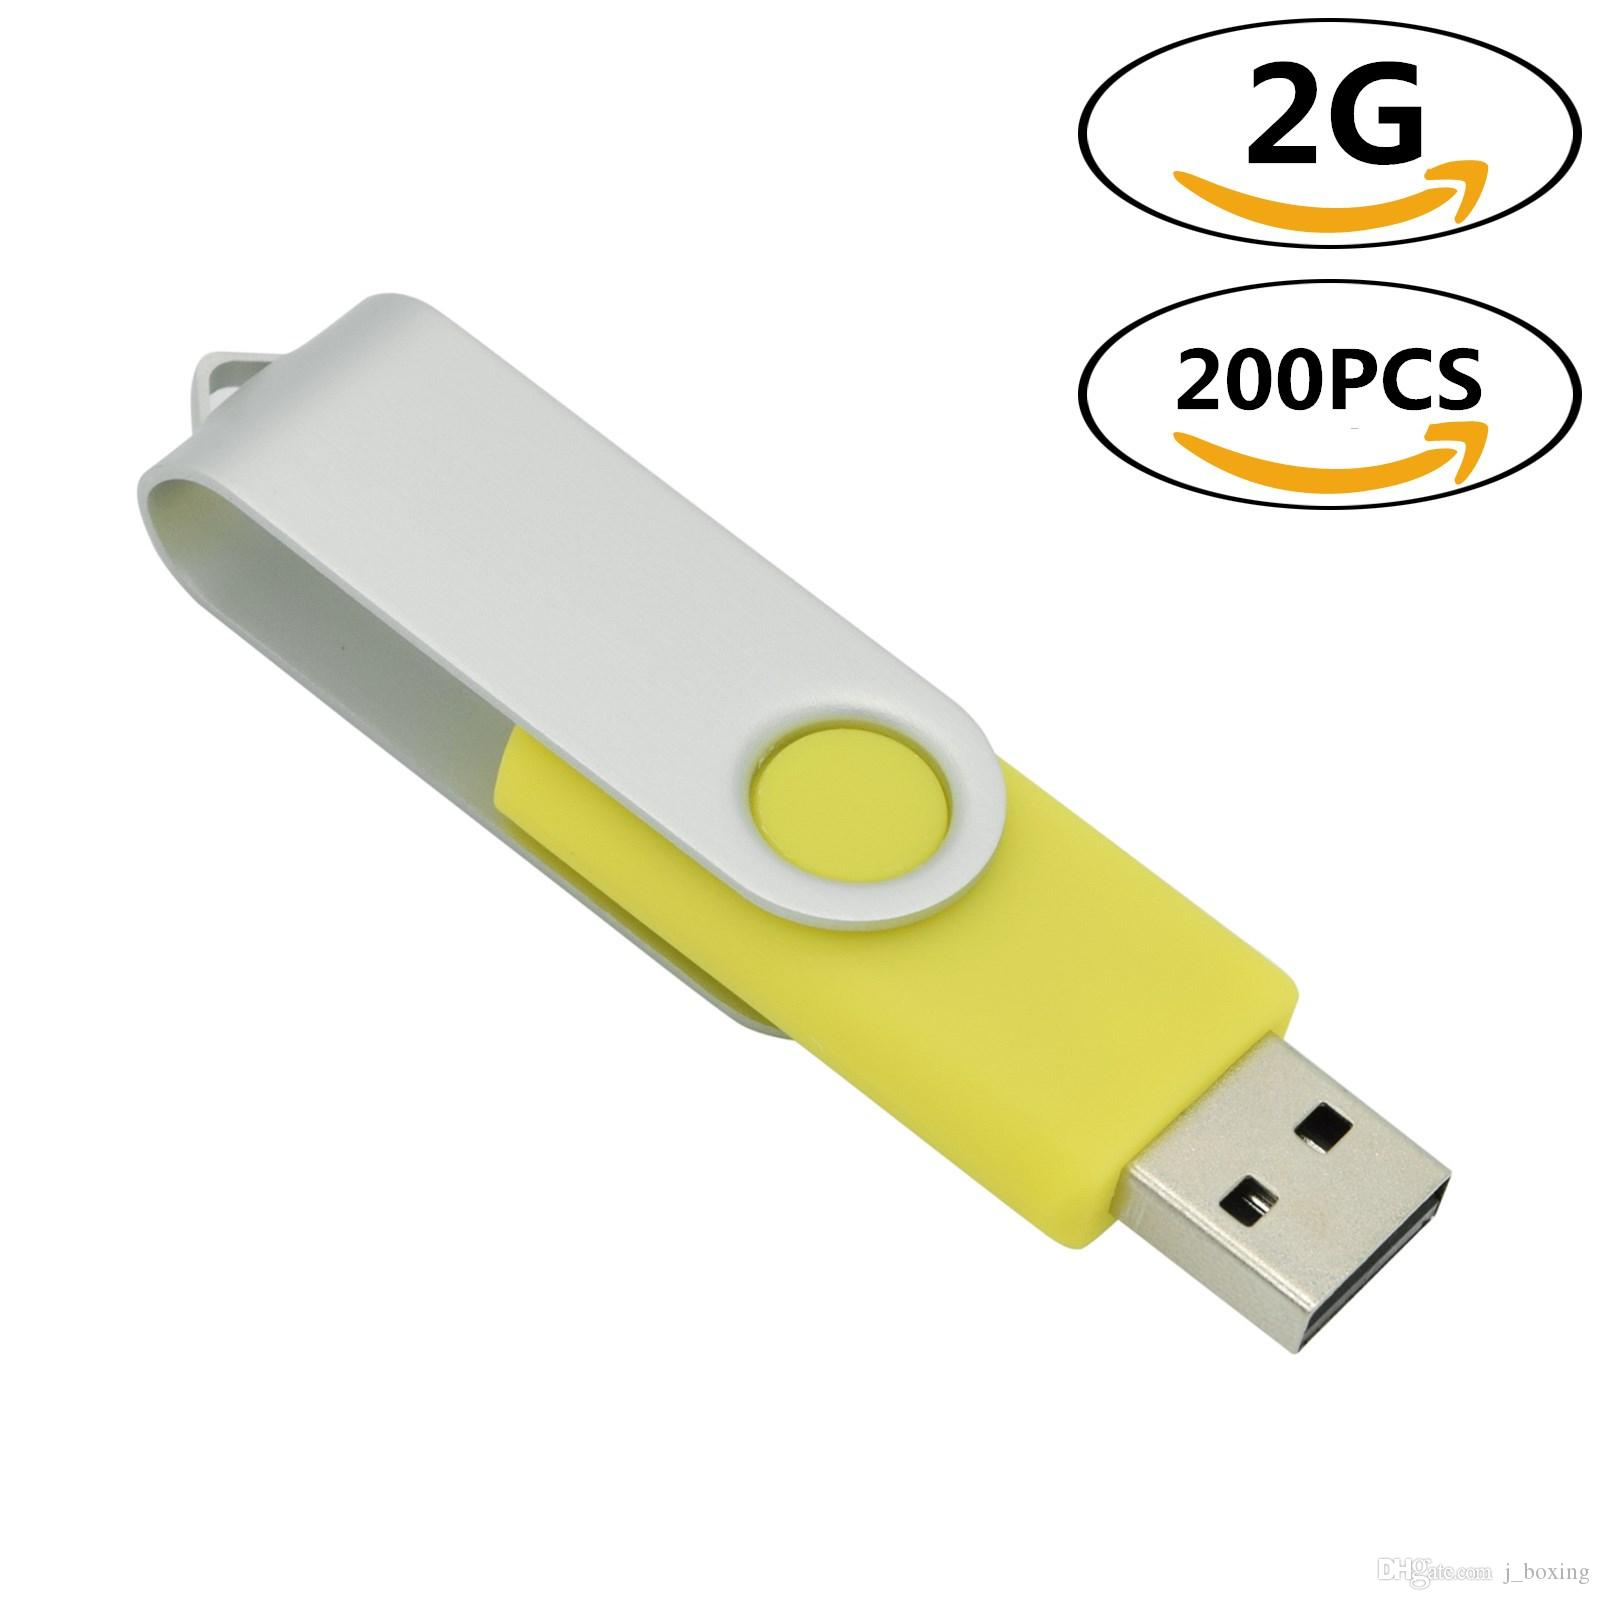 j_boxing Yellow 200PCS 2GB USB 2.0 Flash Drives Rotating Thumb Pen Drives Flash Memory Stick Pen Storage for Computer Laptop Tablet Macbook